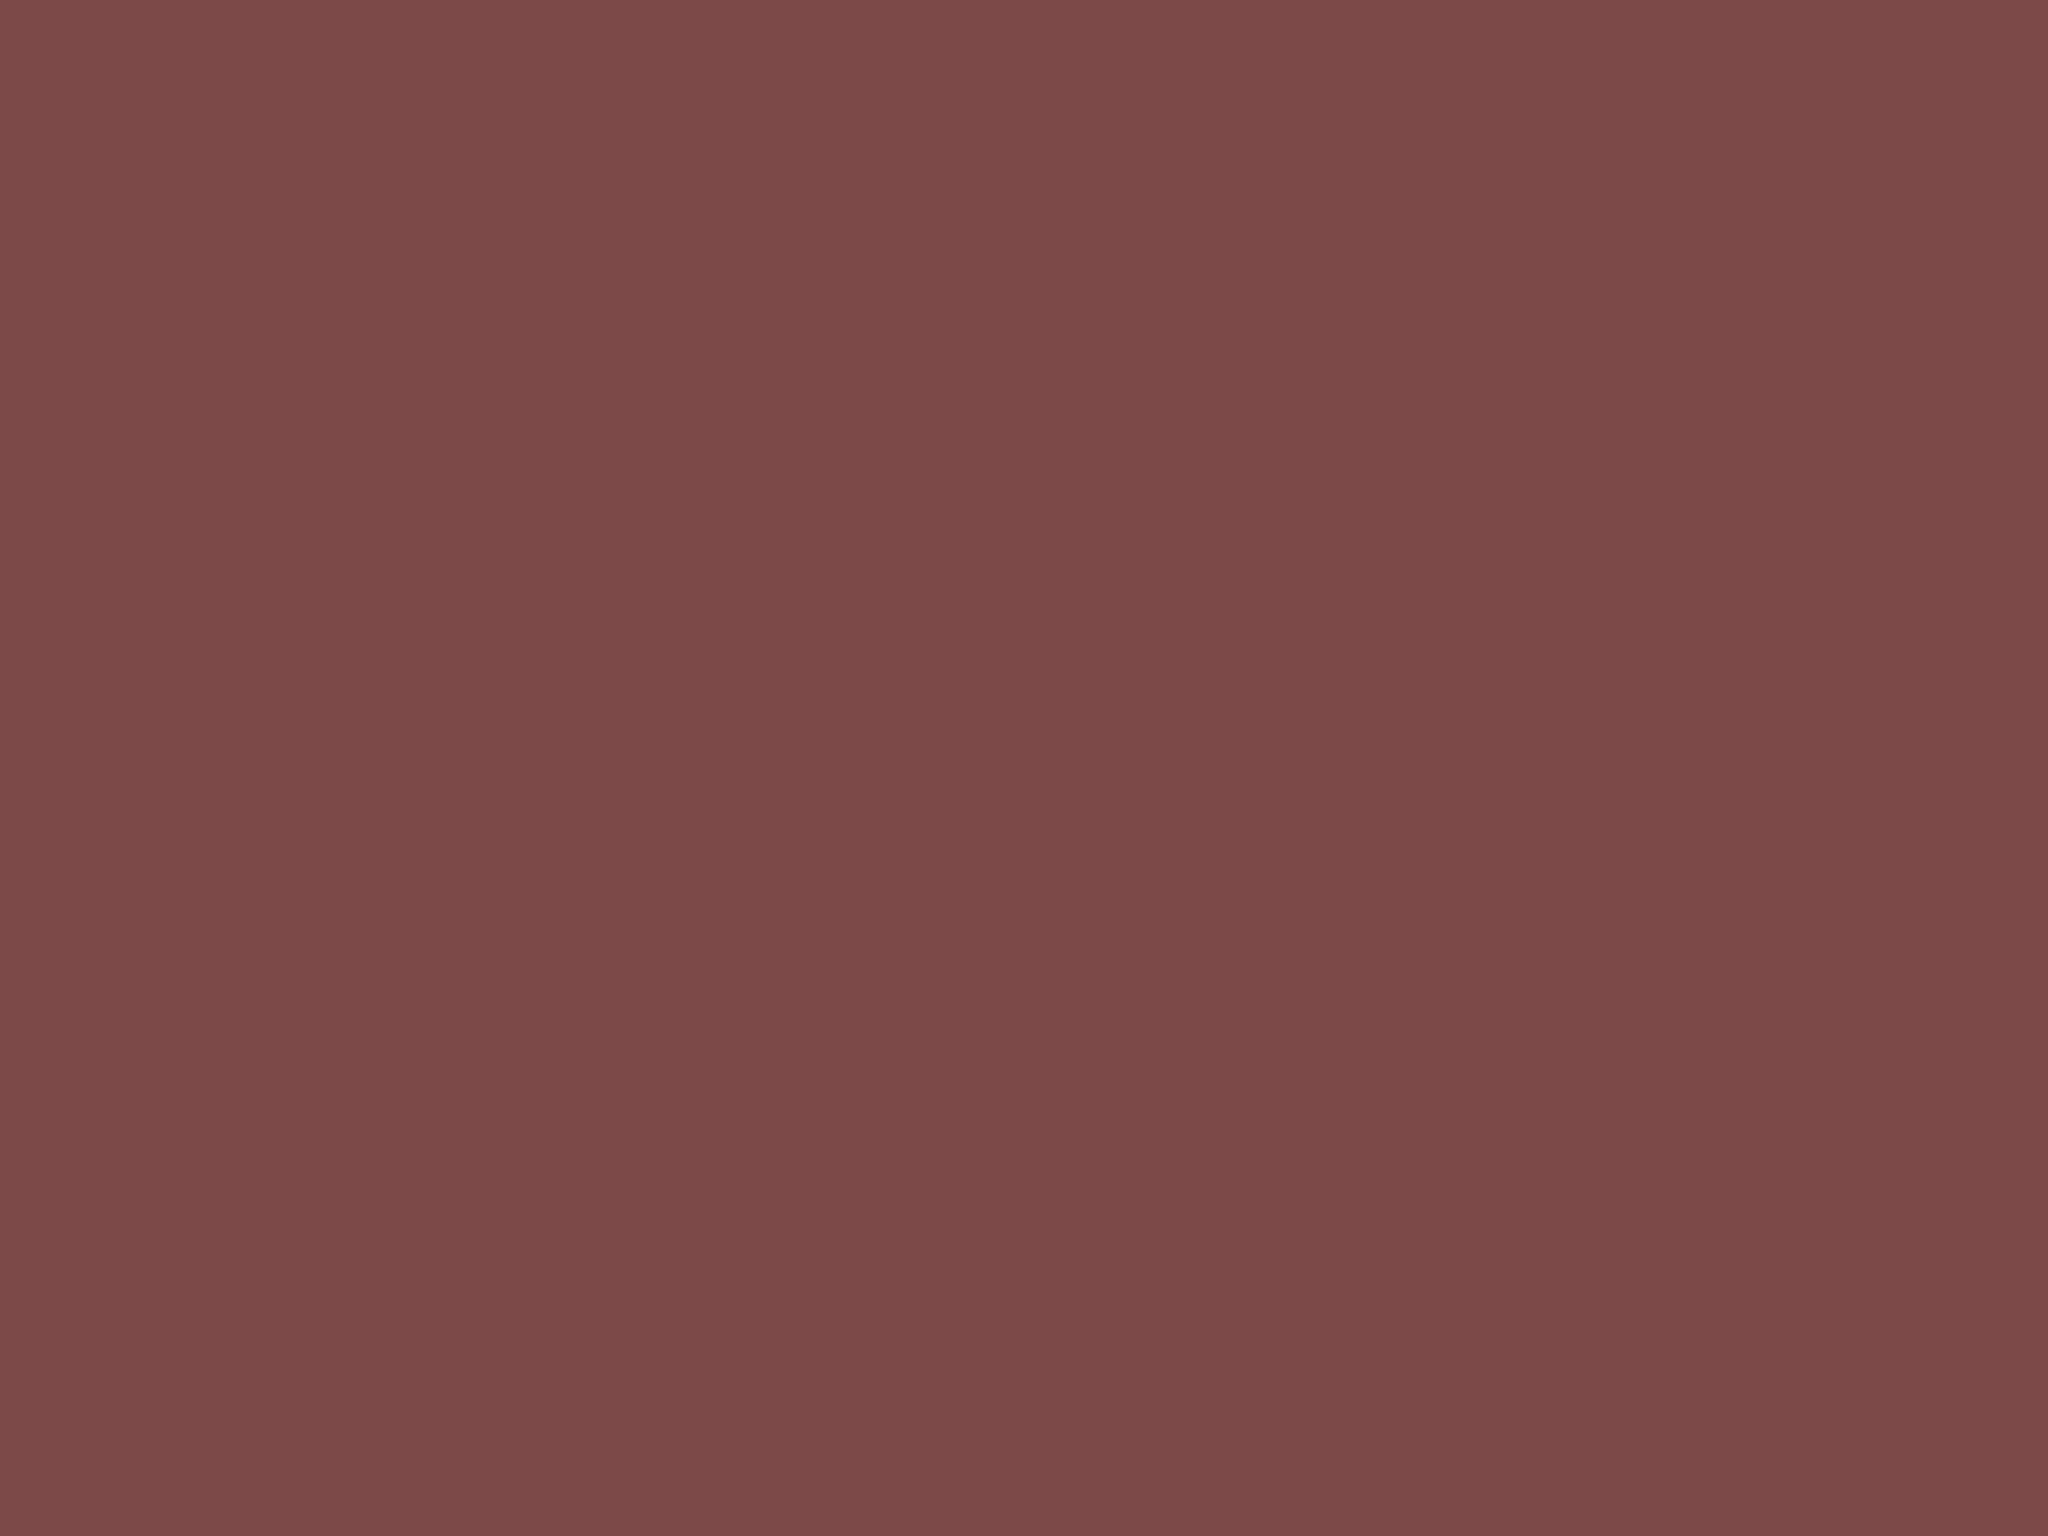 2048x1536 Tuscan Red Solid Color Background